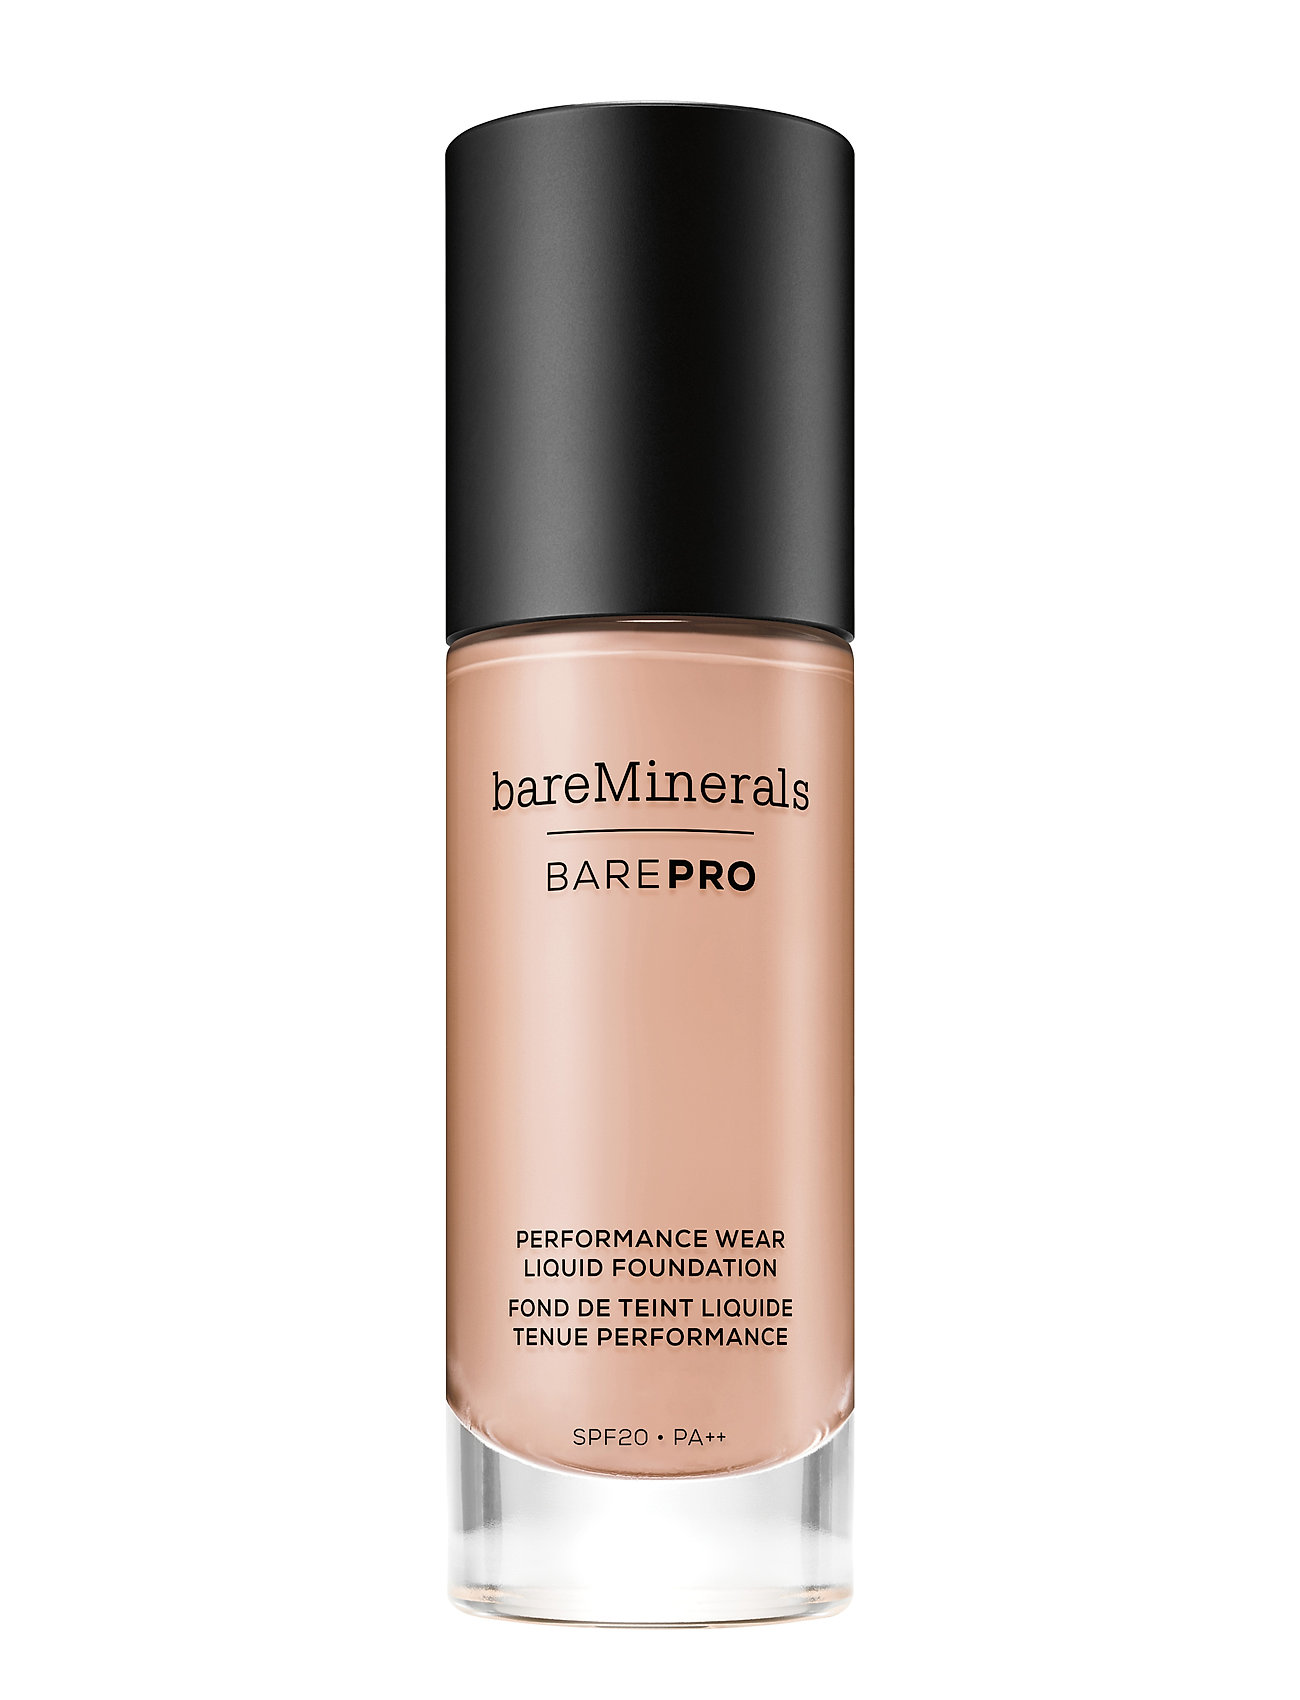 Image of Barepro Performance Wear Liquid Foundation Spf 20 Foundation Makeup BareMinerals (3409849887)